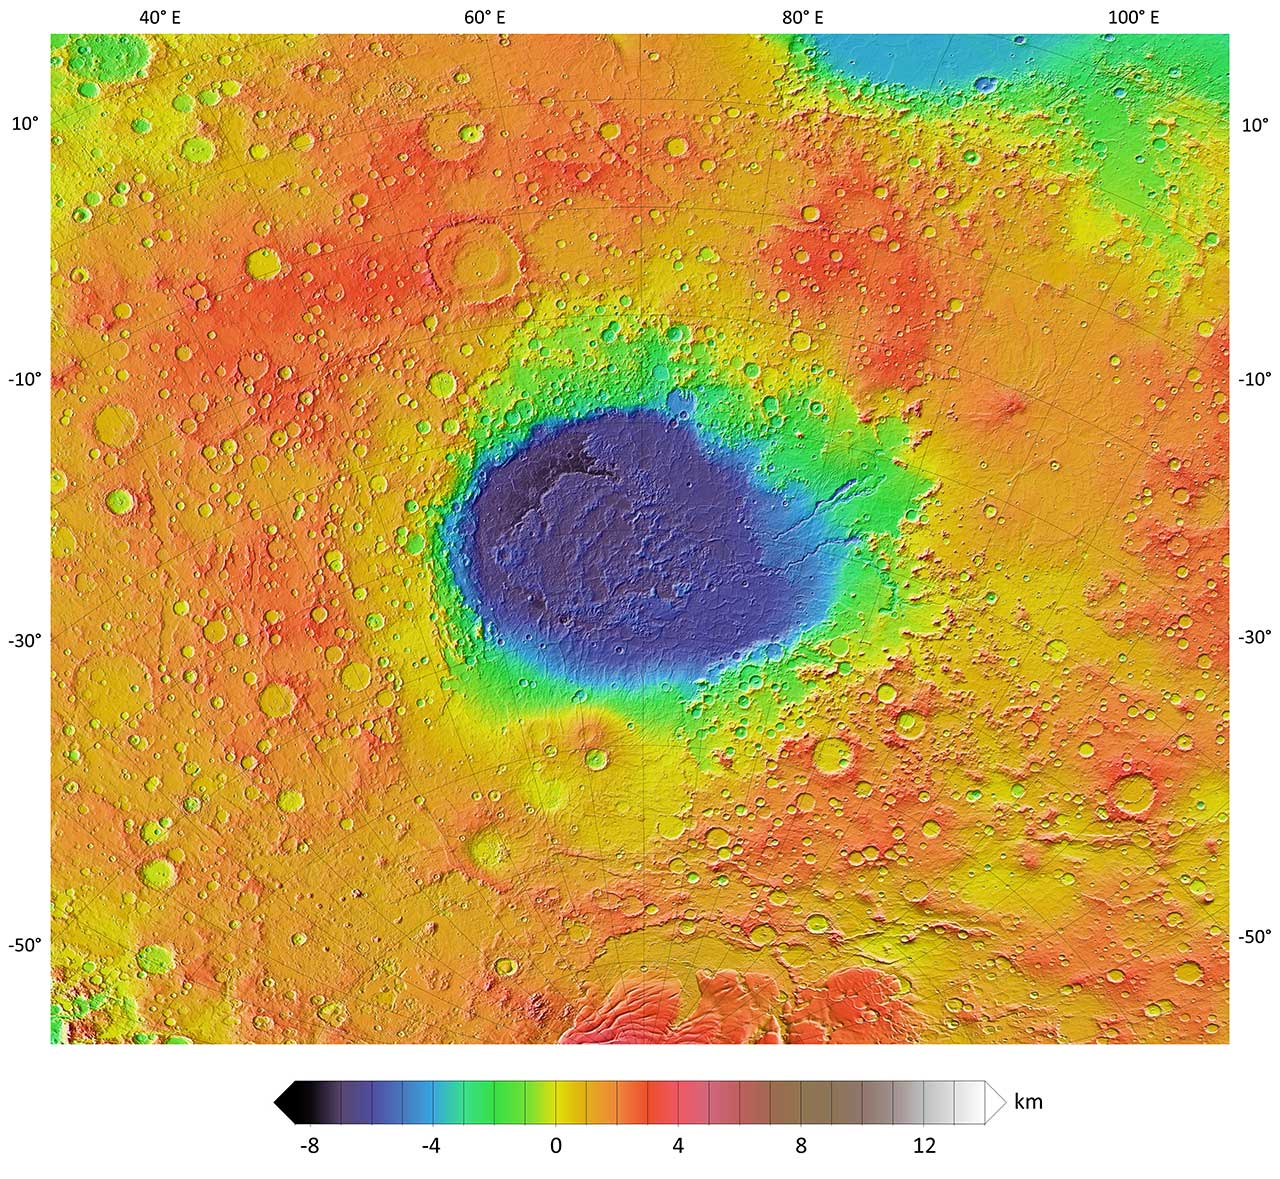 Hellas Planitia impact crater for some interesting facts about impact craters on Mars